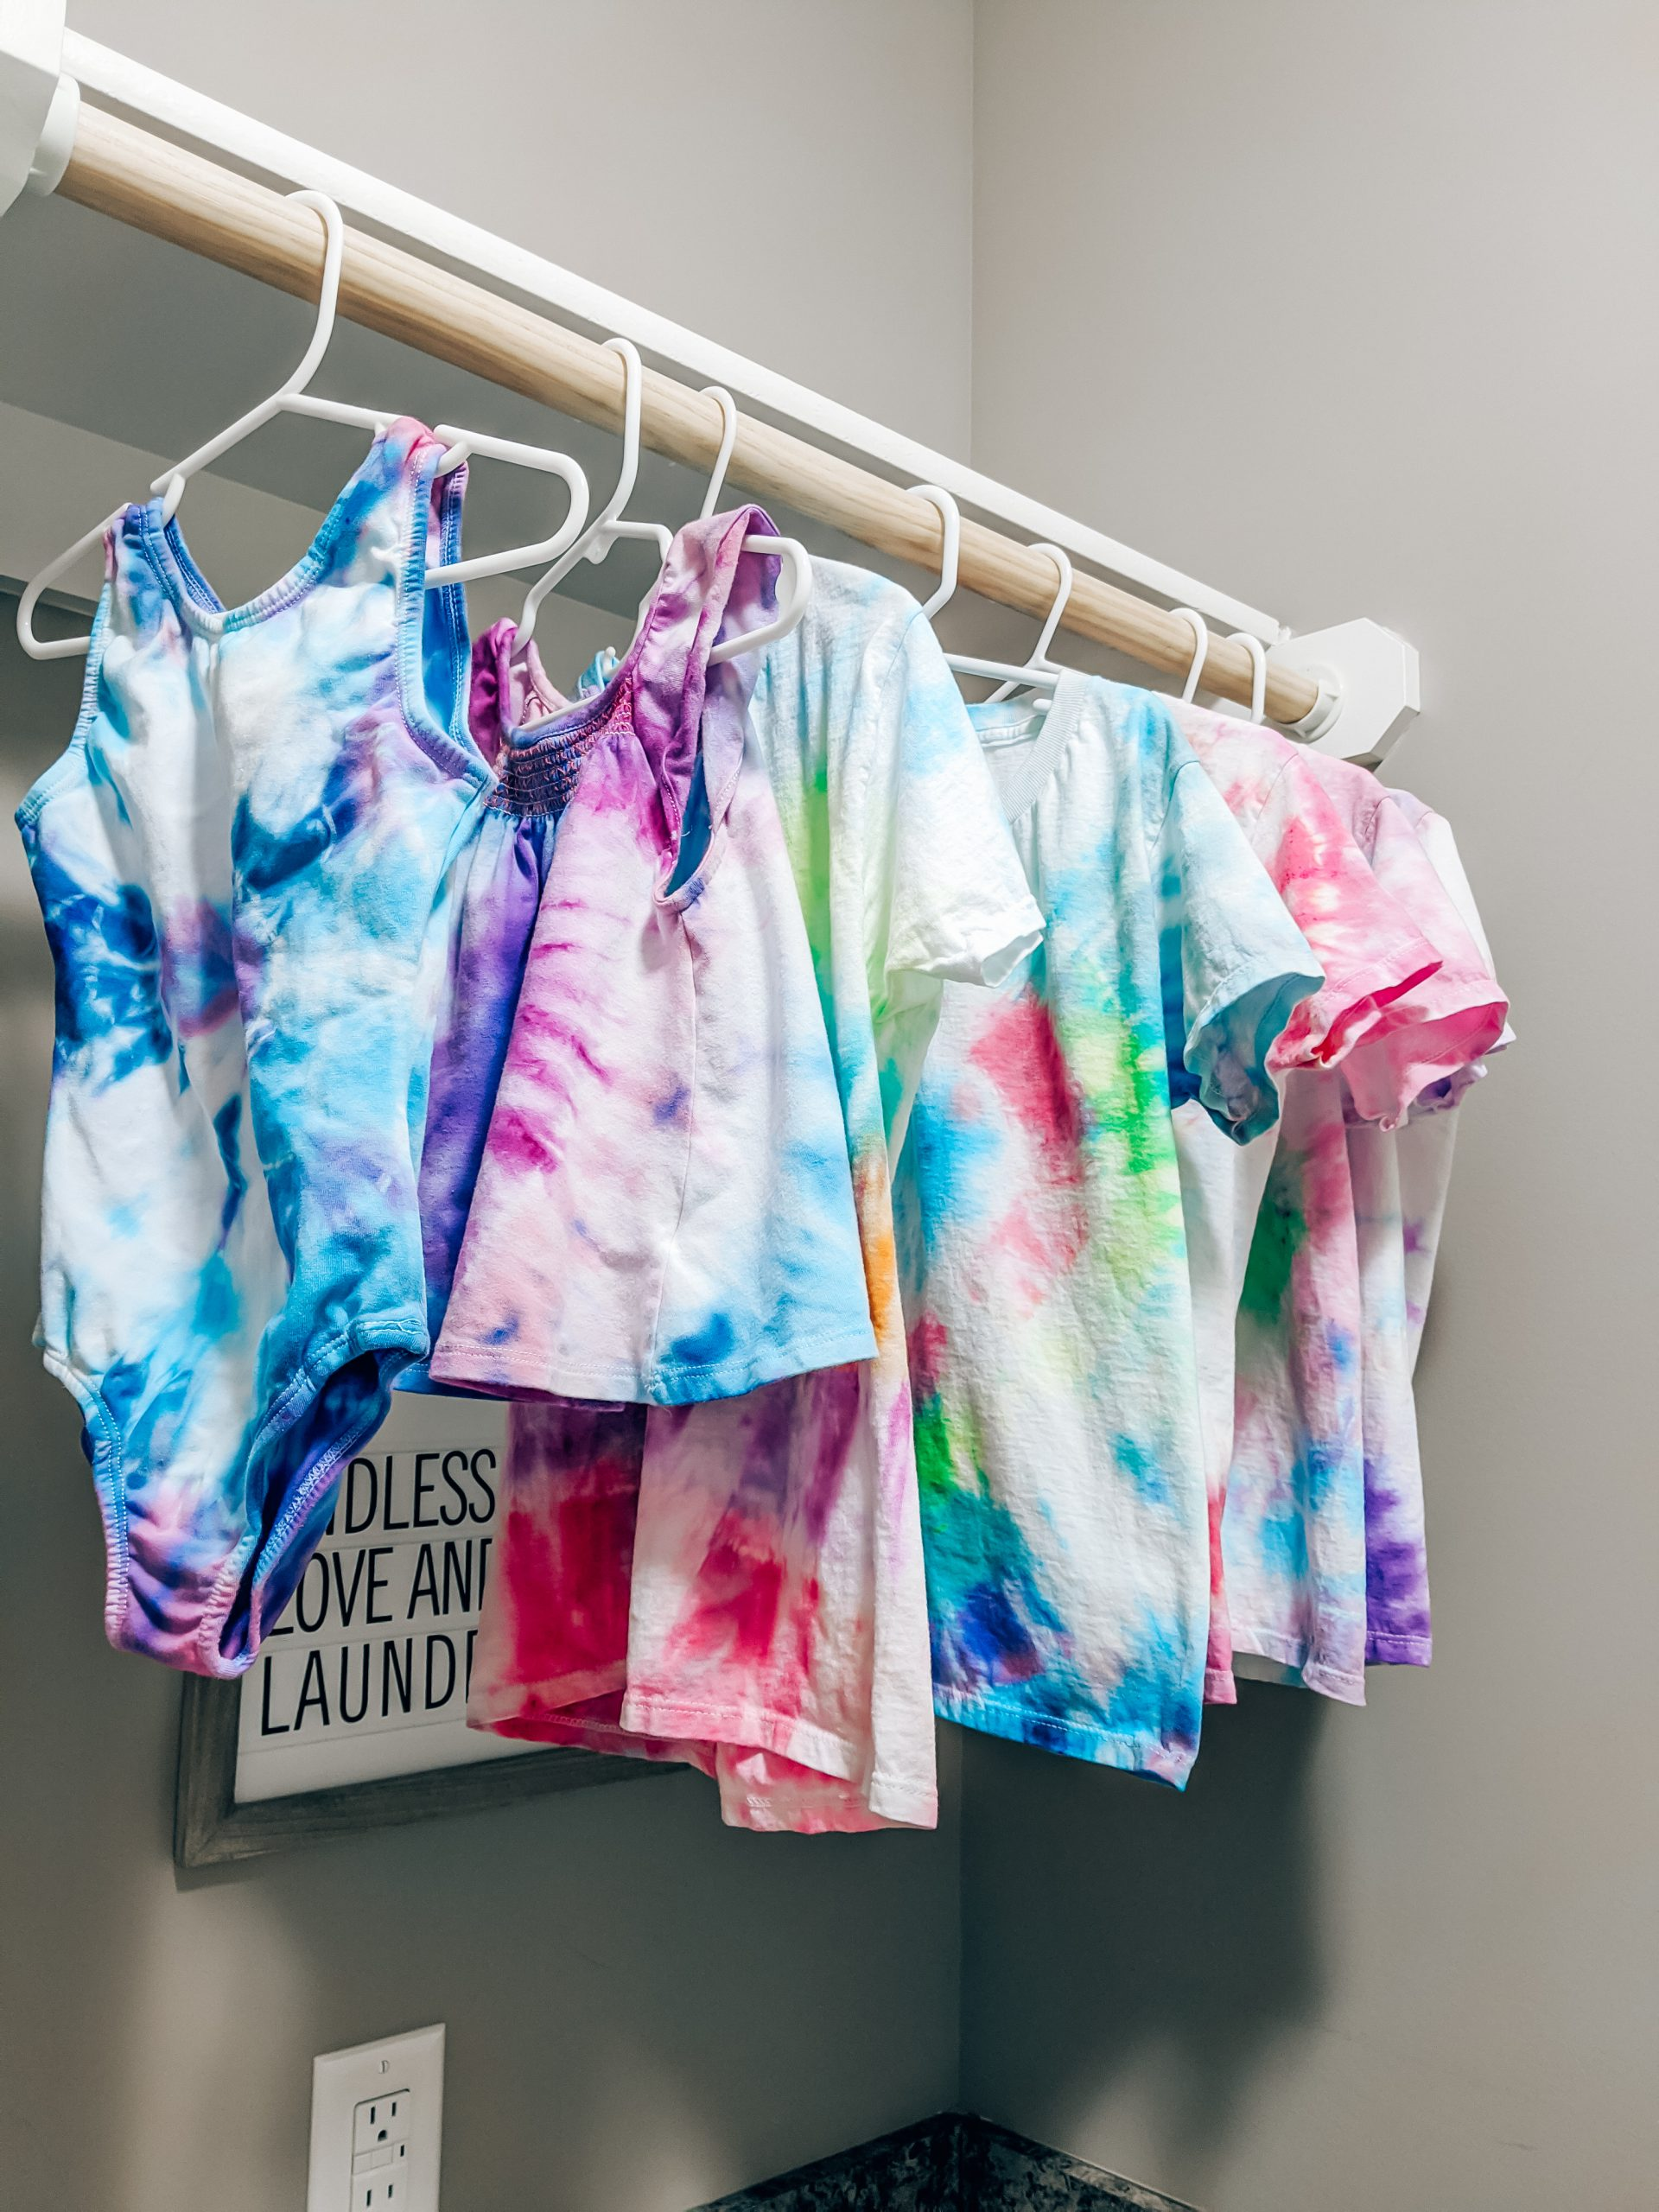 2 Minute Tie Dye Reviews - Microwave Dyeing Technique: Kansas City blogger Tricia Nibarger of COVET by tricia shows how to make DIY tie dye shirts using the two minute tie dye method! #tiedye #diy #tiedyeshirt #upcycle